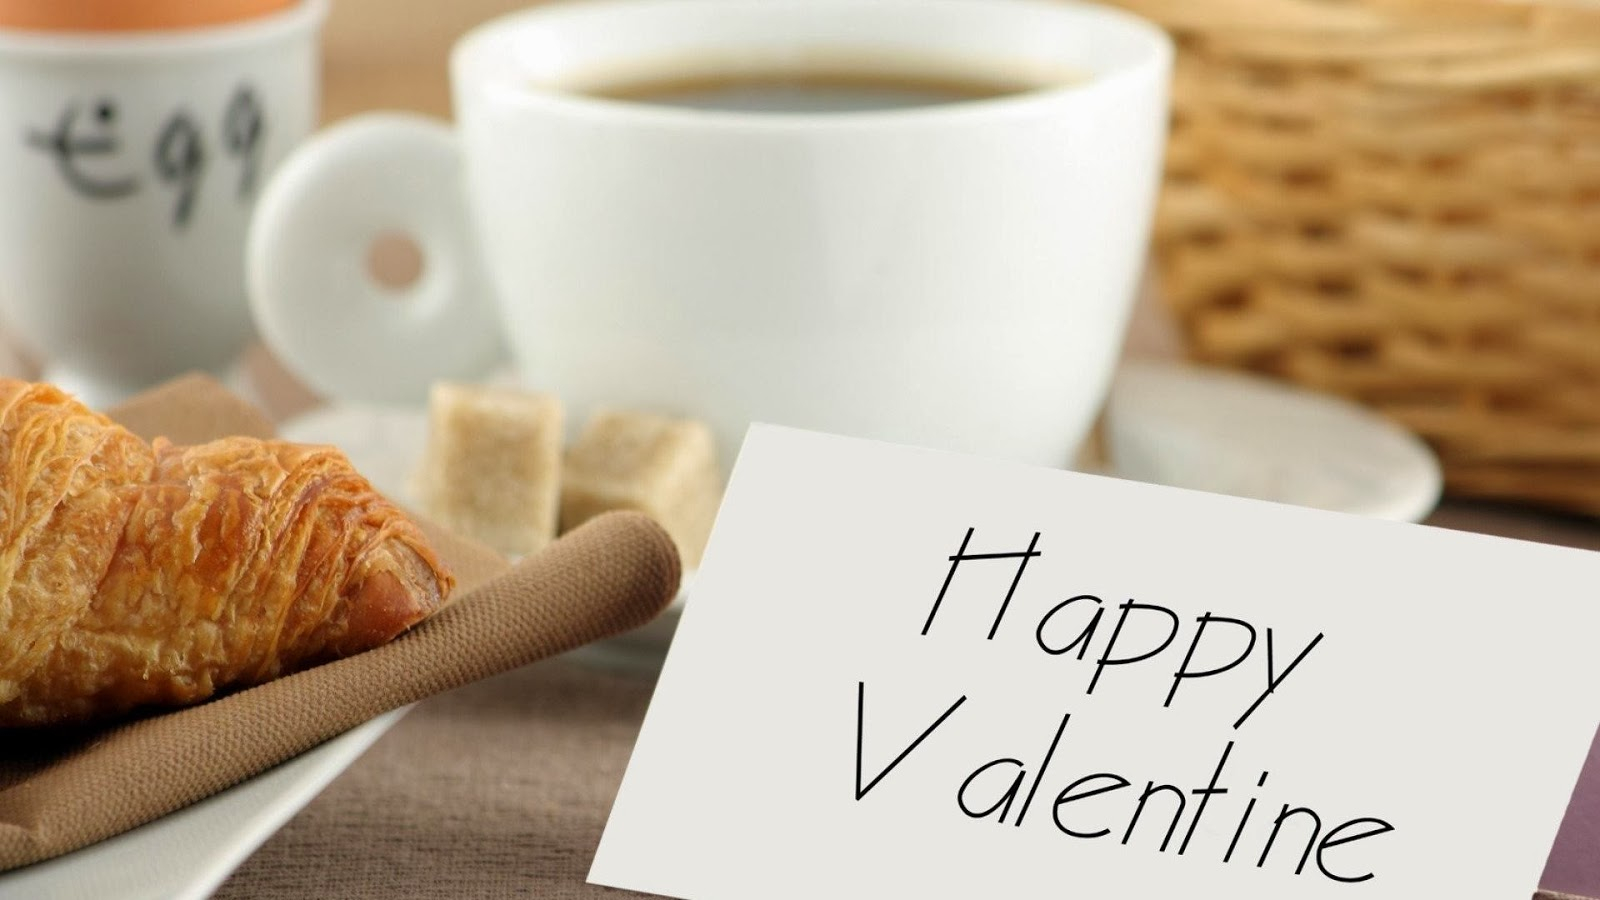 Happy Valentines Day Cards Ideas HD Nice Wallpapers